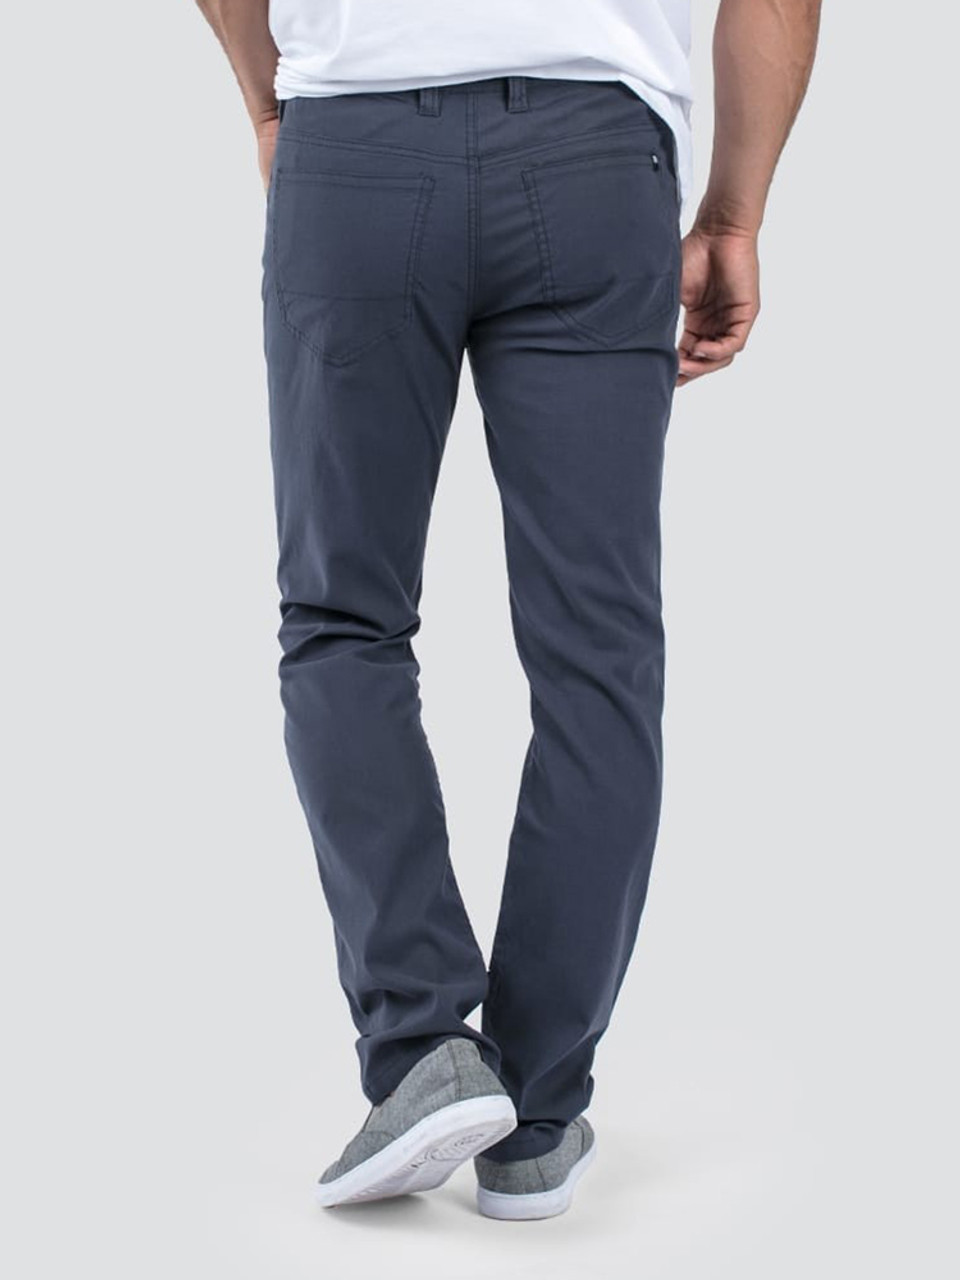 9a9af5360 Travis Mathew Trifecta Pant - Blue Nights - Mens For Sale